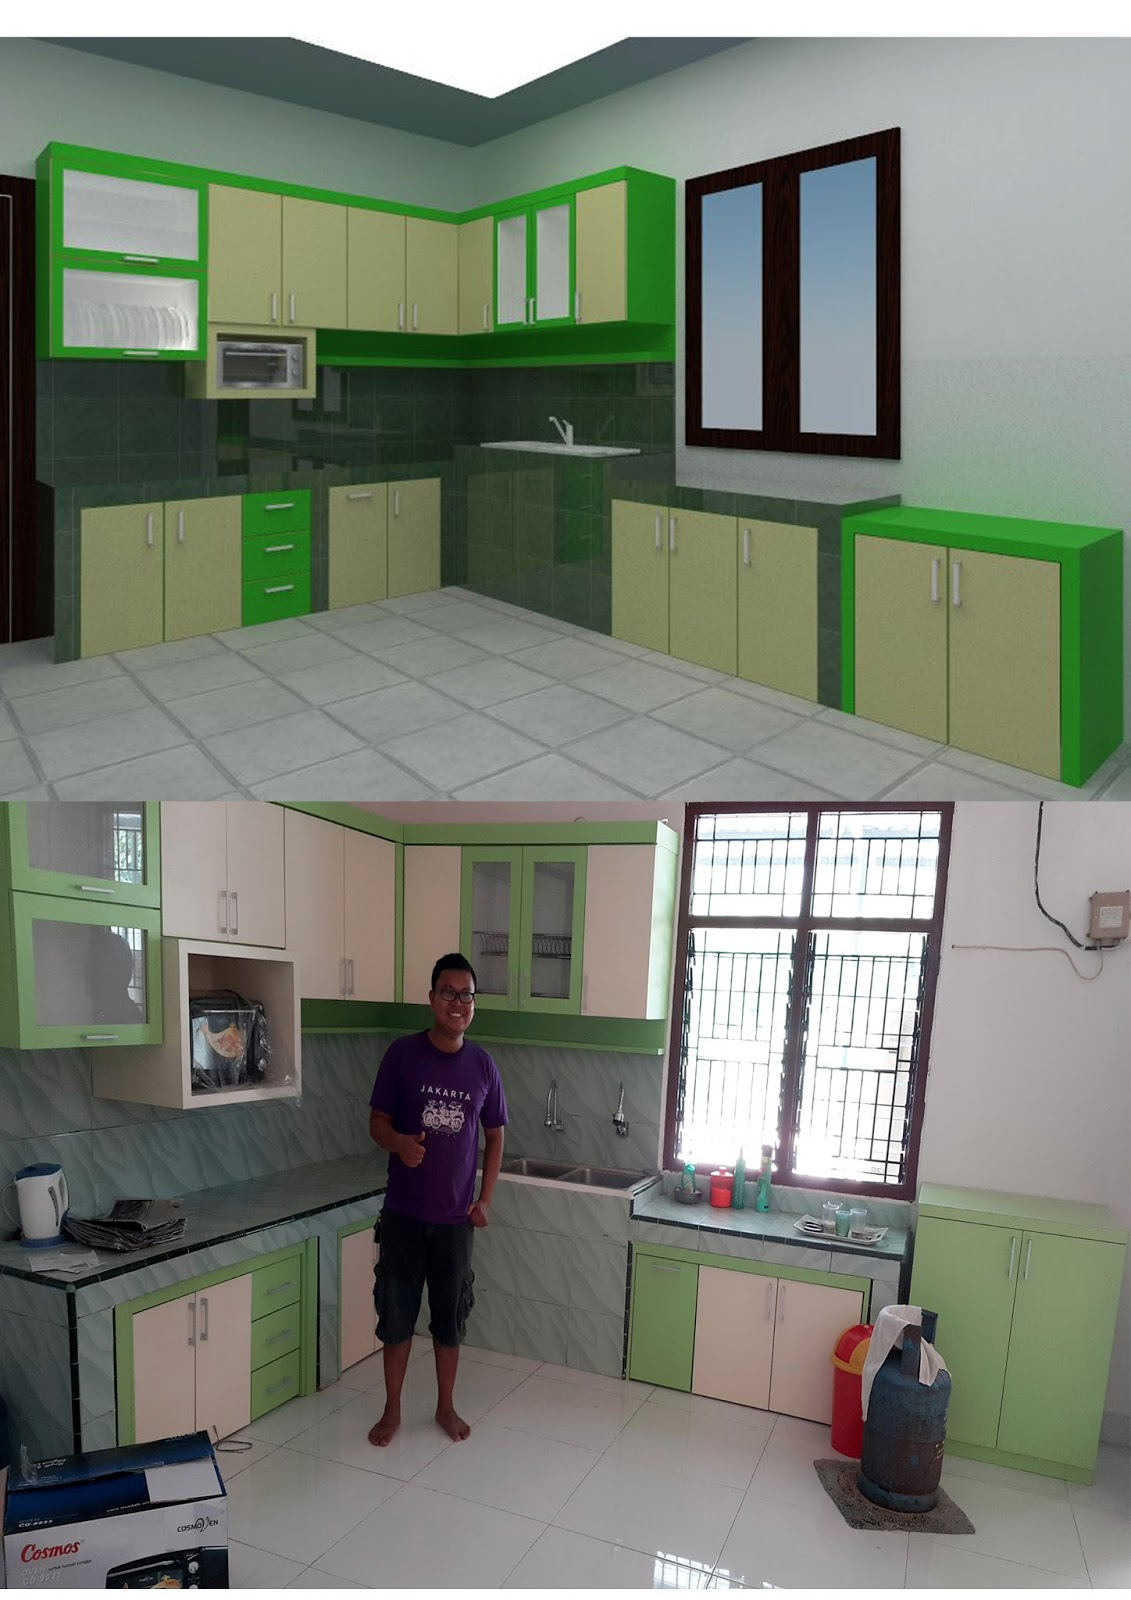 Kitchen Set Lampung on paint set, glass set, black set, bedroom set, house set, room set, entertainment set, tv set, restaurant set, cooking set, bar set, living set, lounge set, above ground pool set, beauty set, dinner set, sleep set, dining set, pots and pans set, office set,